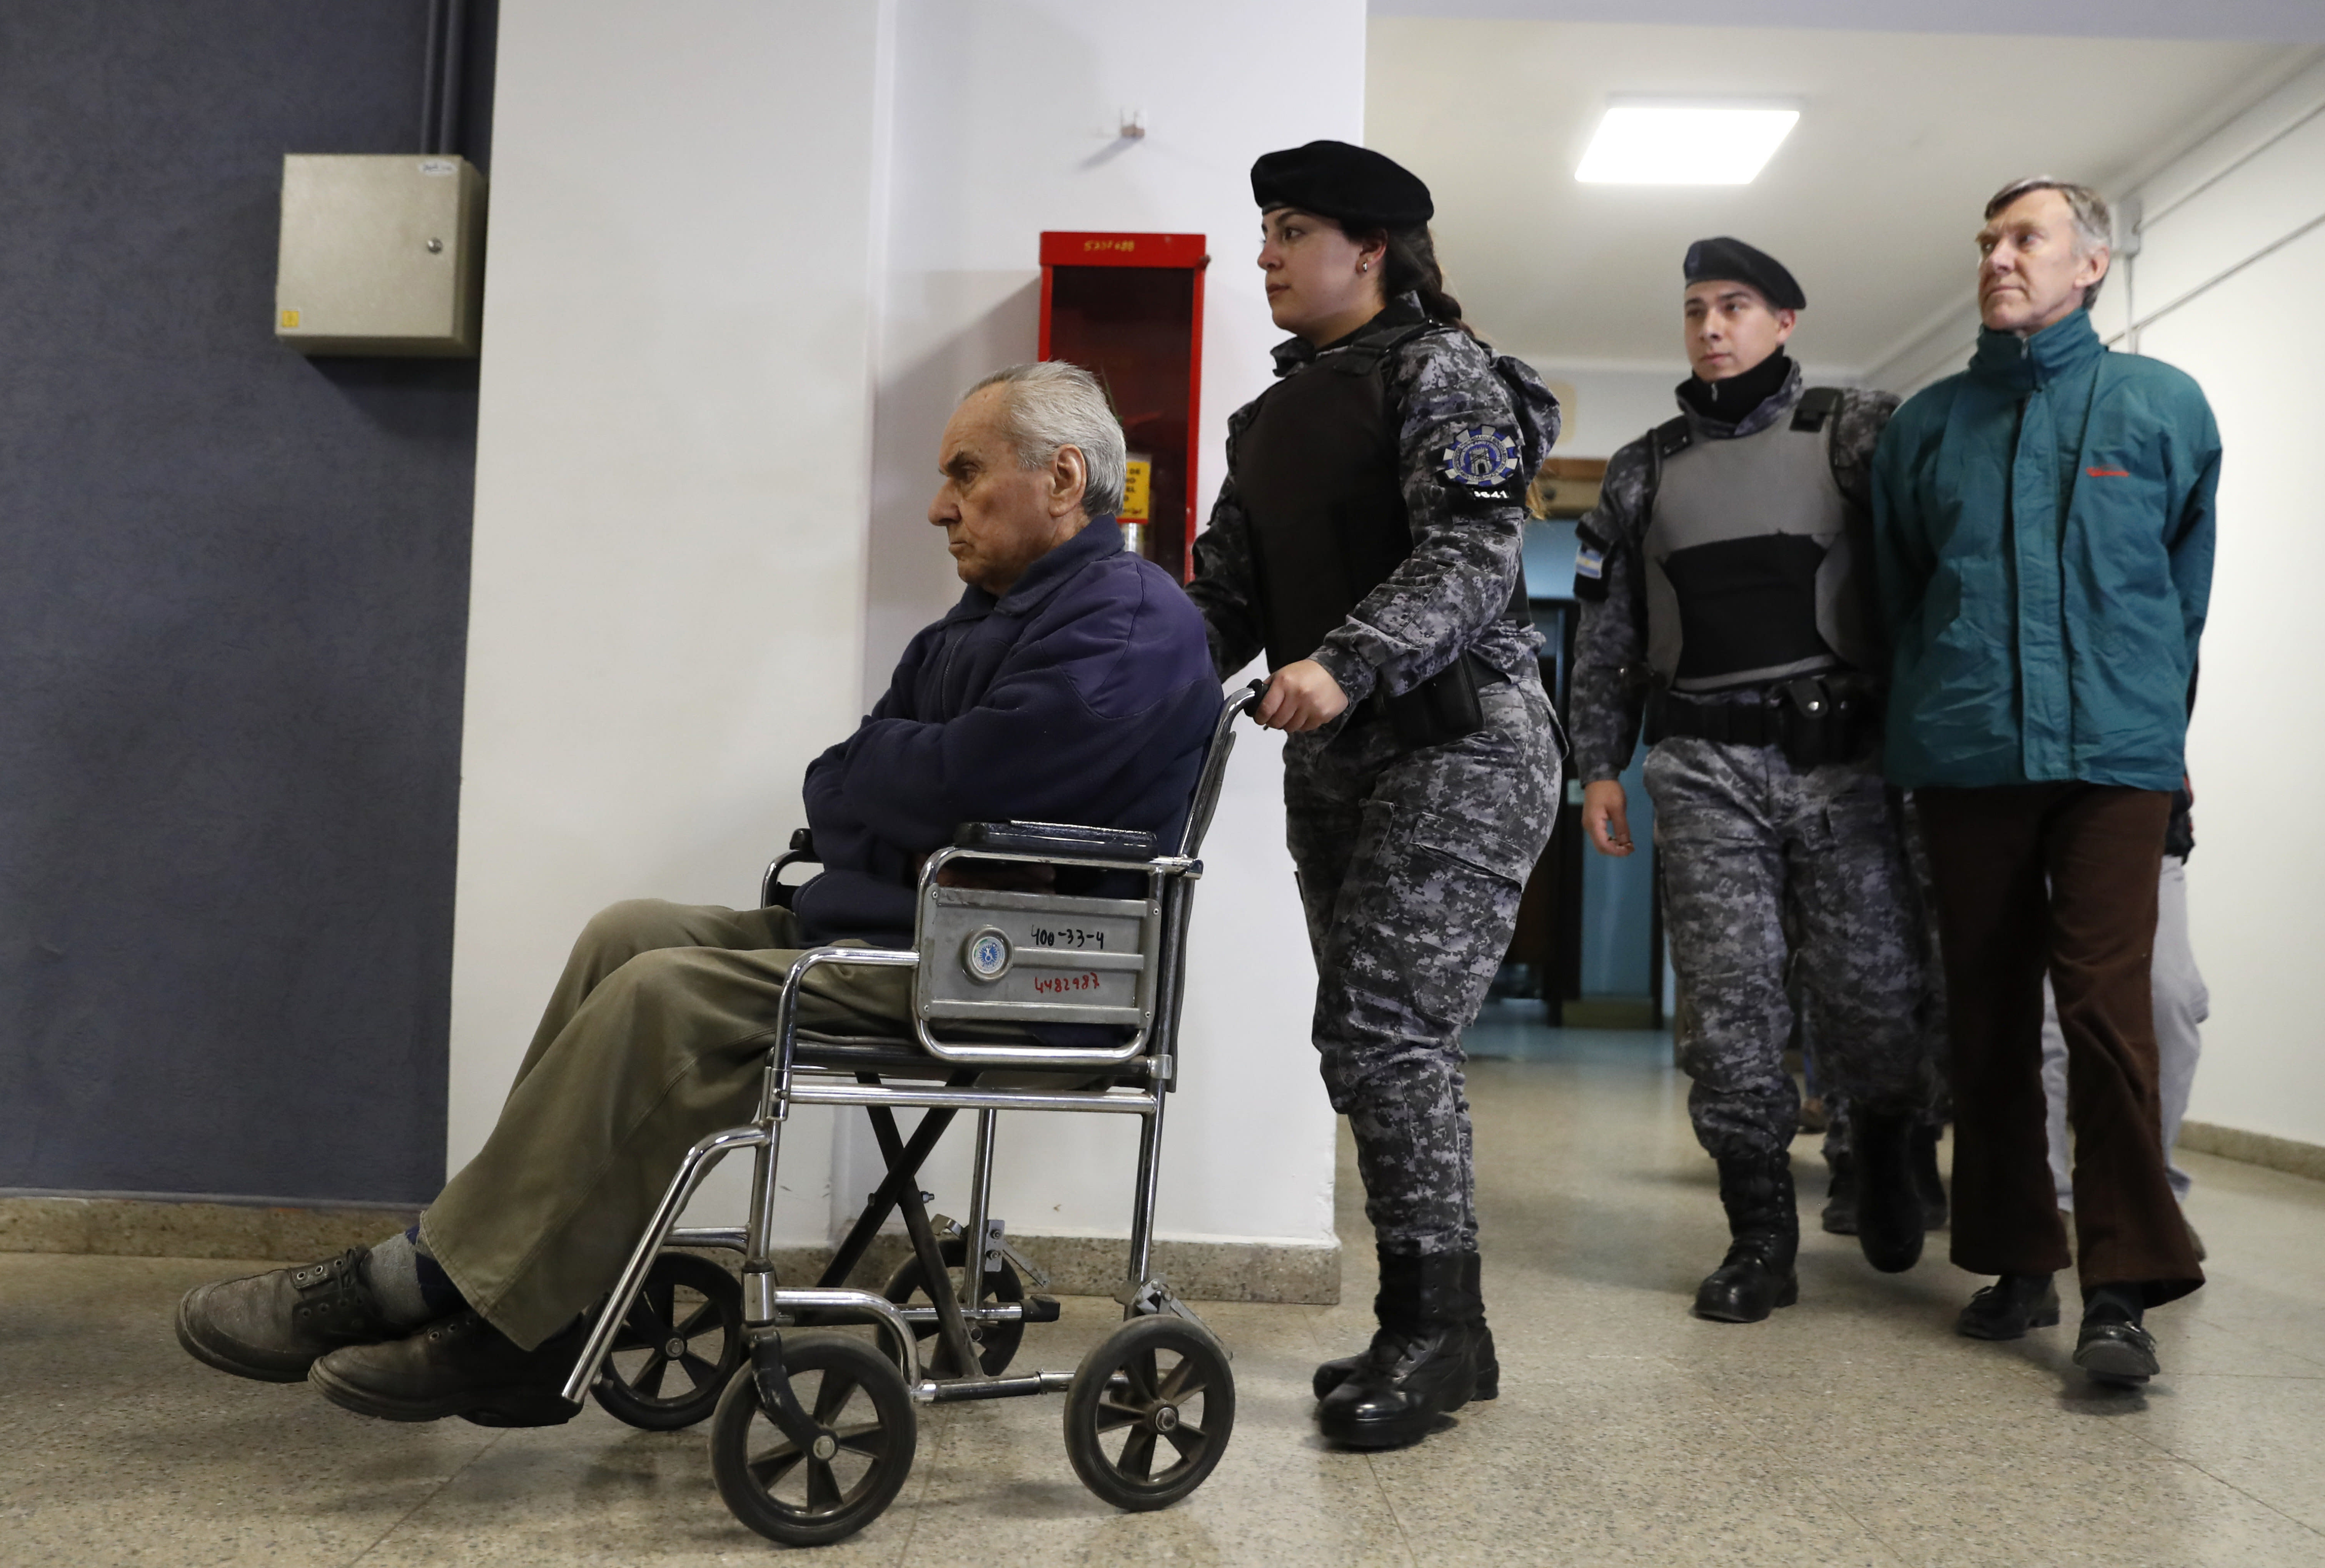 Argentina: 2 priests given 40+ years in jail over abuse